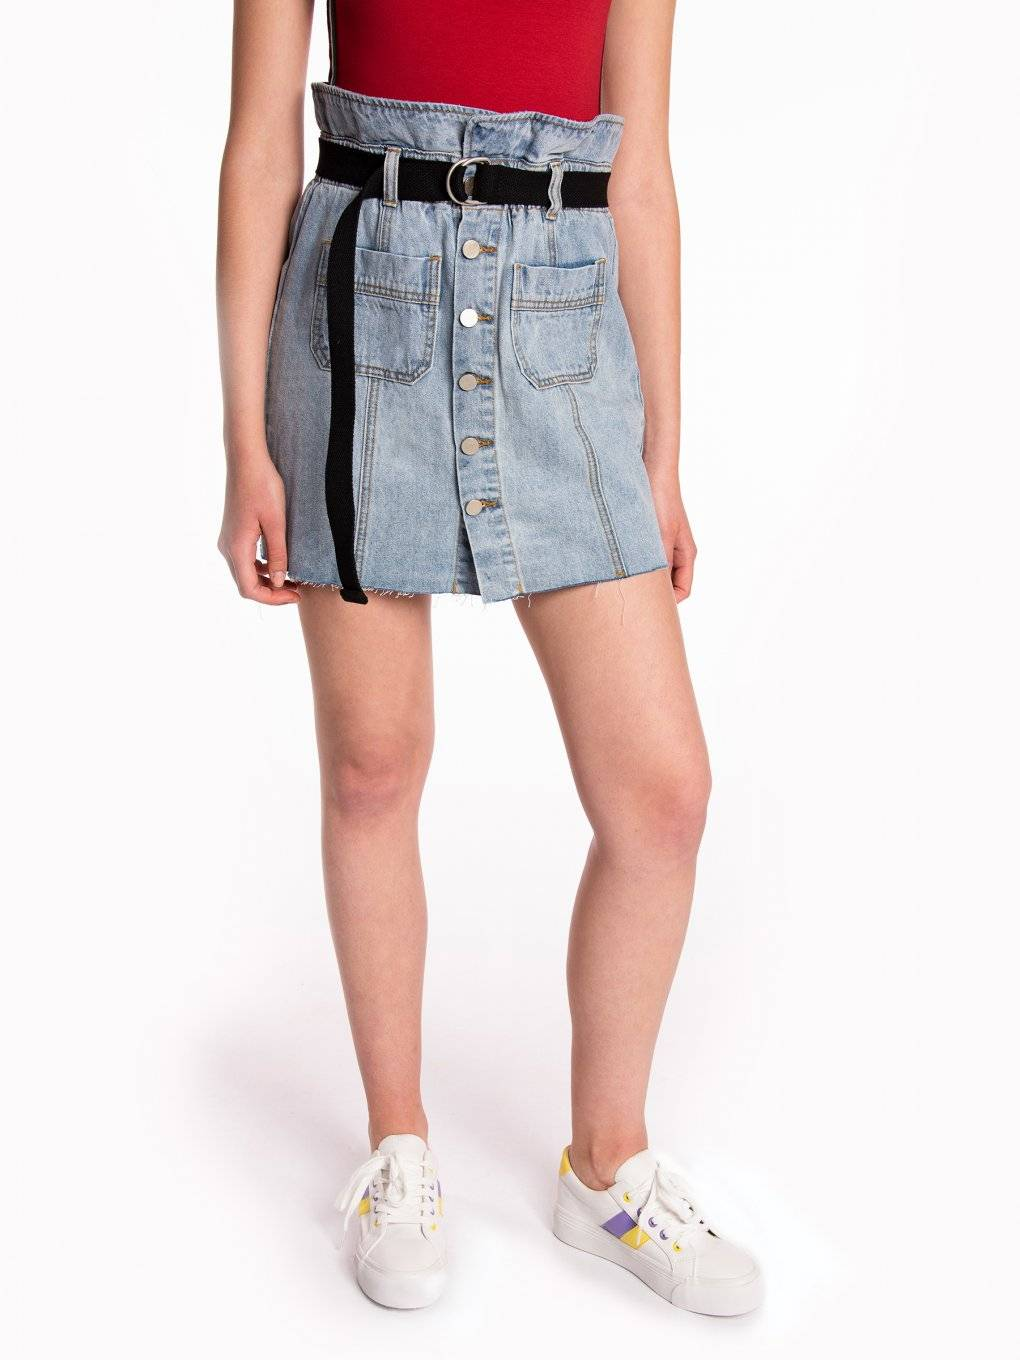 High waisted denim button down skirt with belt